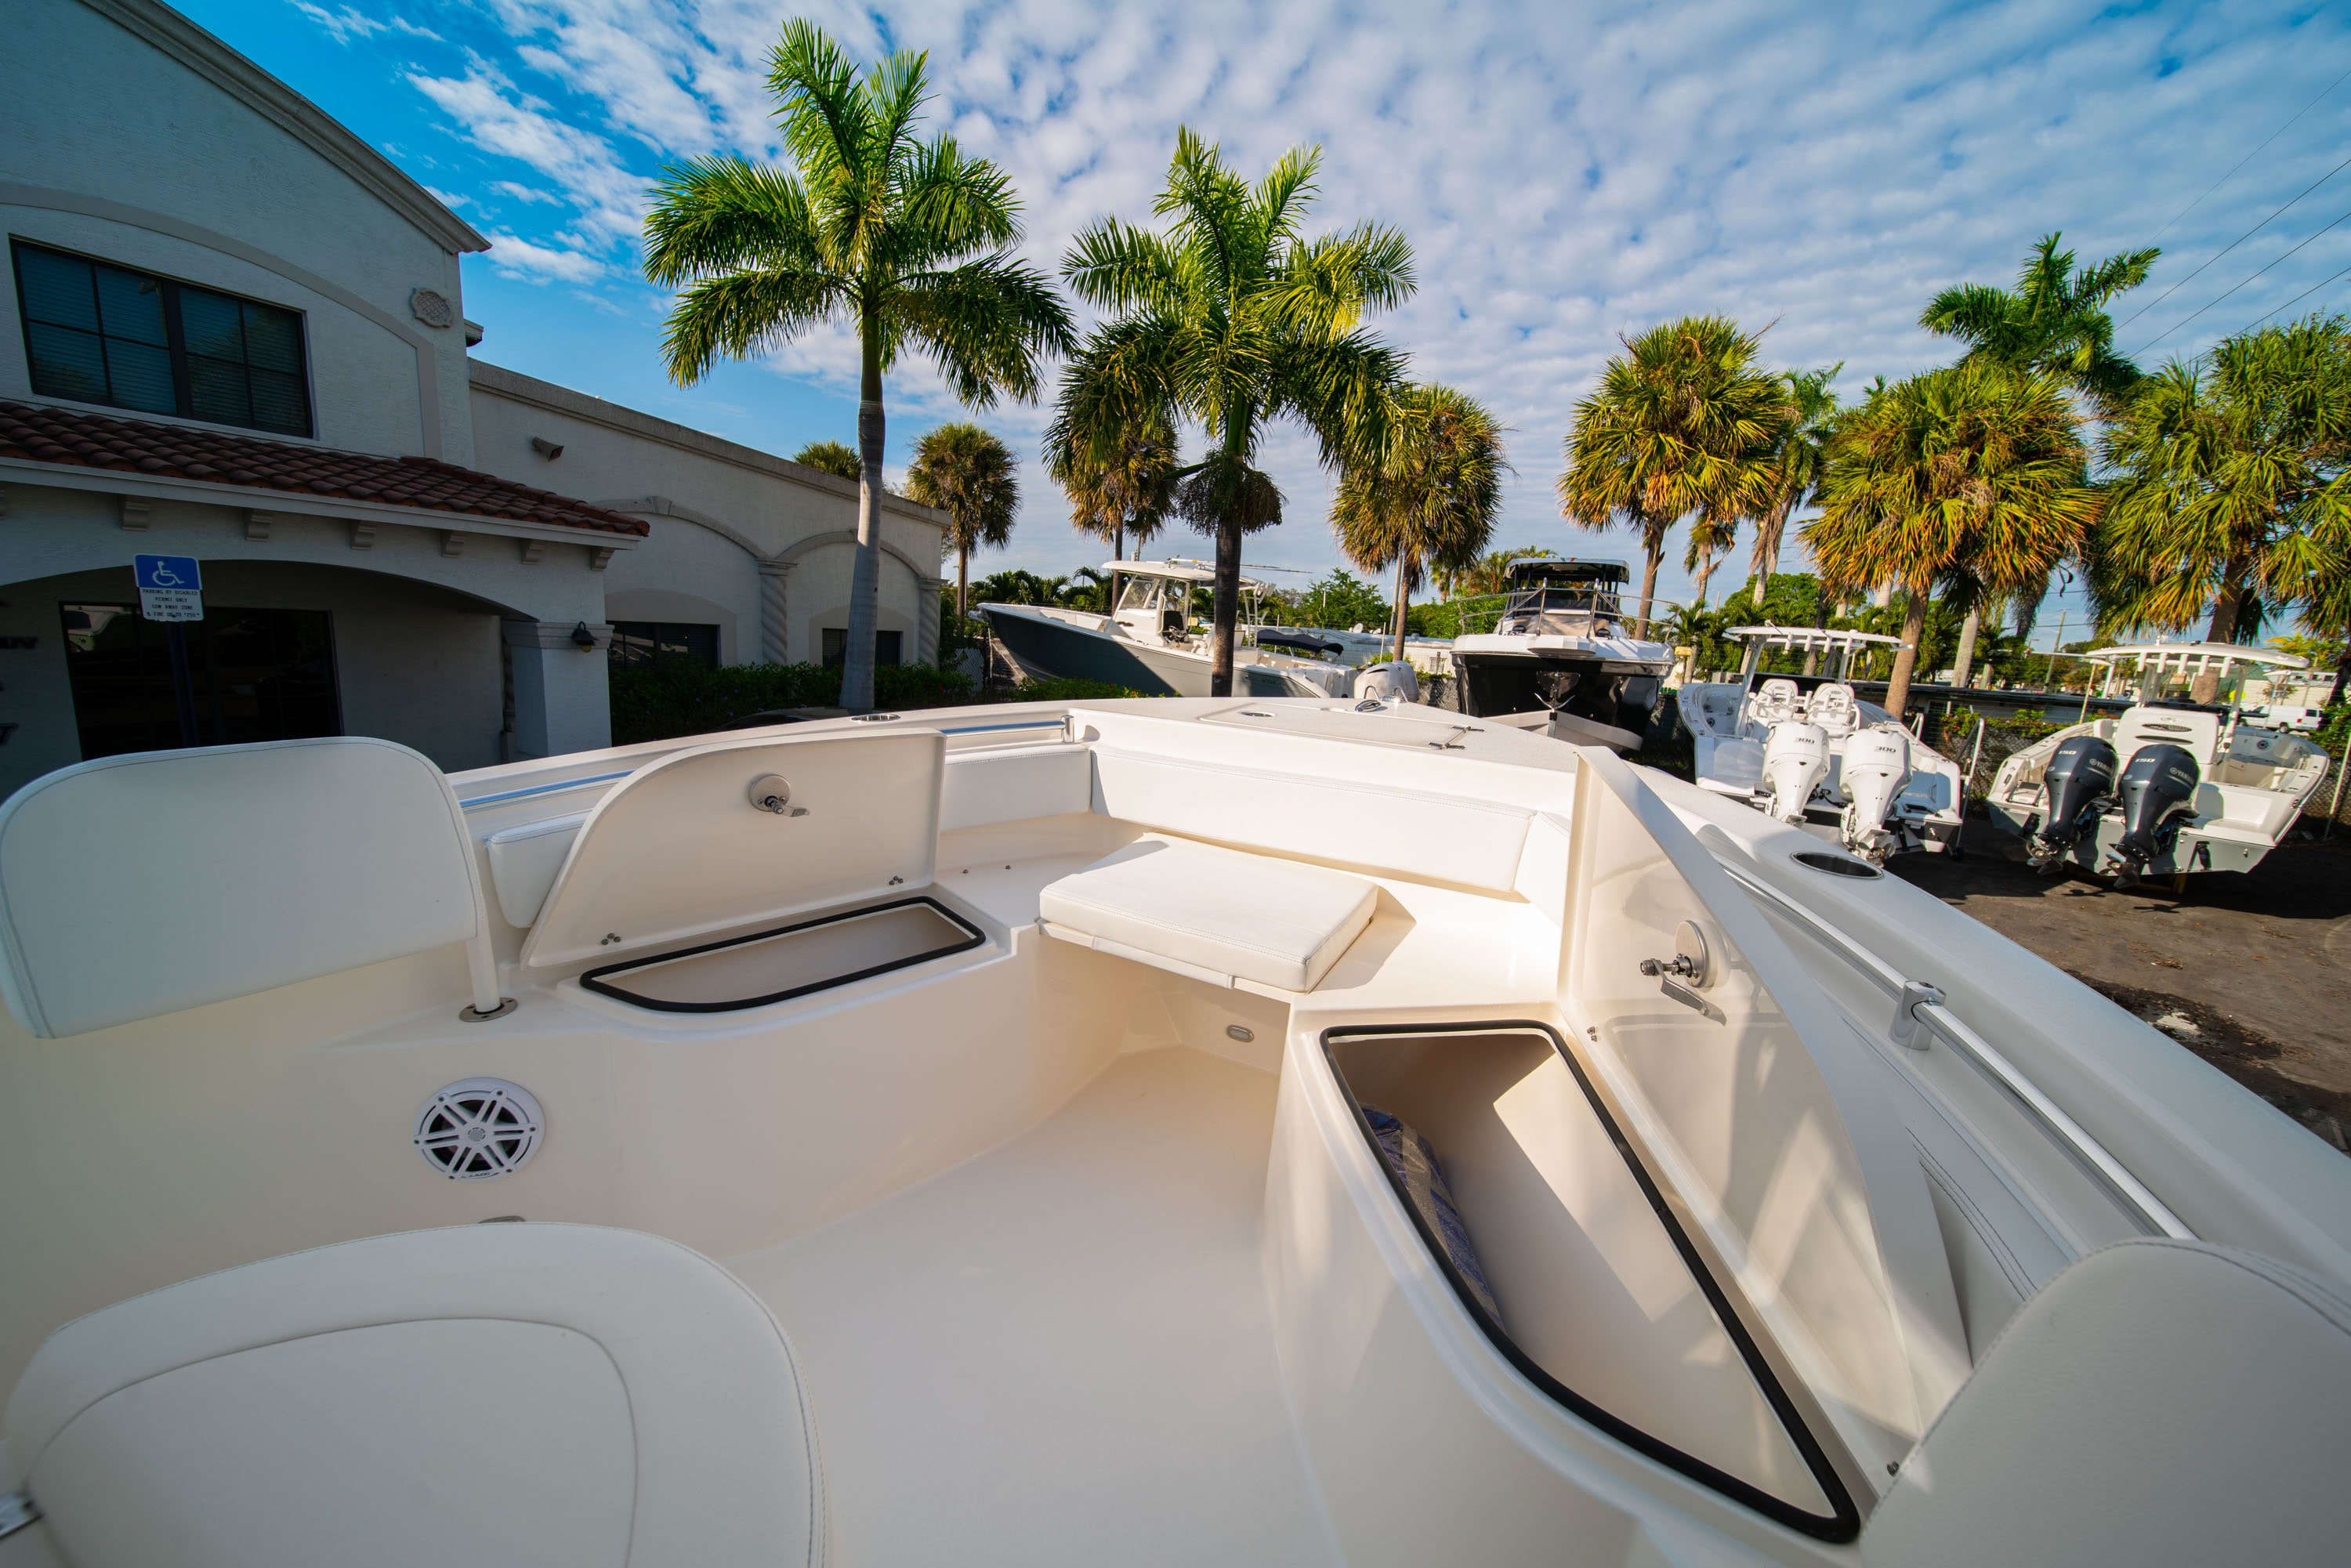 Thumbnail 33 for New 2020 Cobia 220 CC boat for sale in West Palm Beach, FL